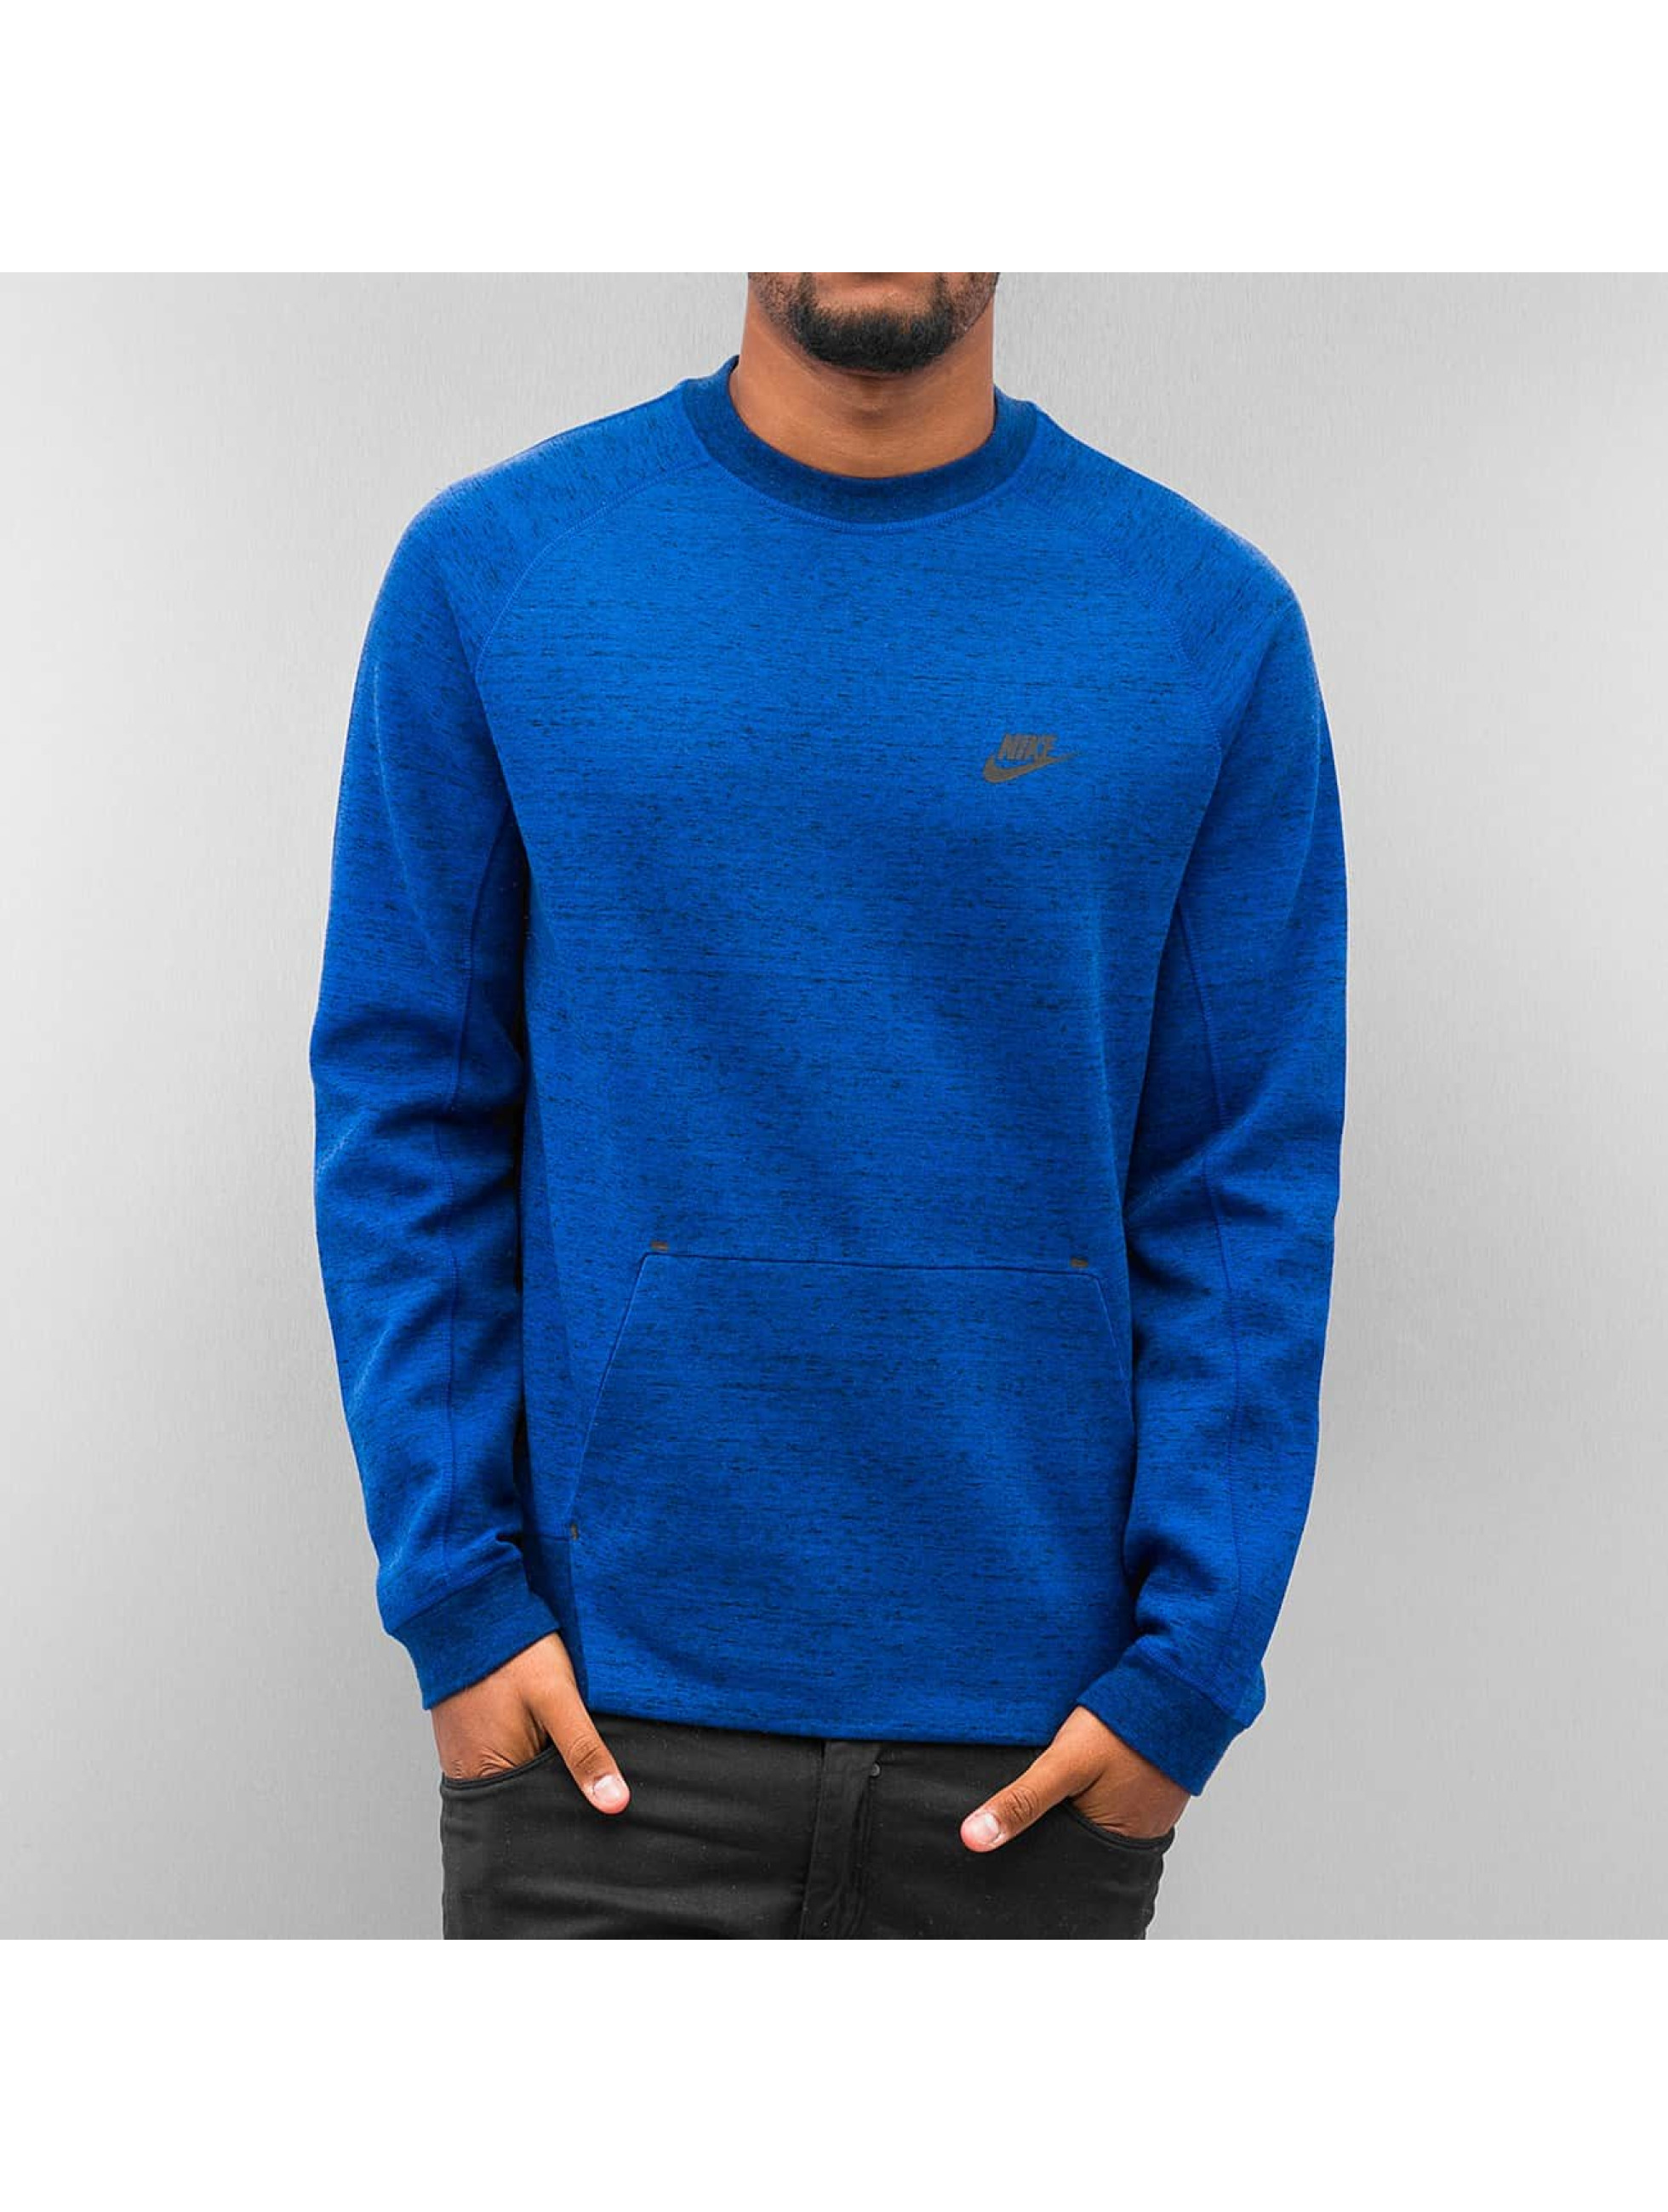 nike oberteil pullover tech fleece in blau 197467. Black Bedroom Furniture Sets. Home Design Ideas